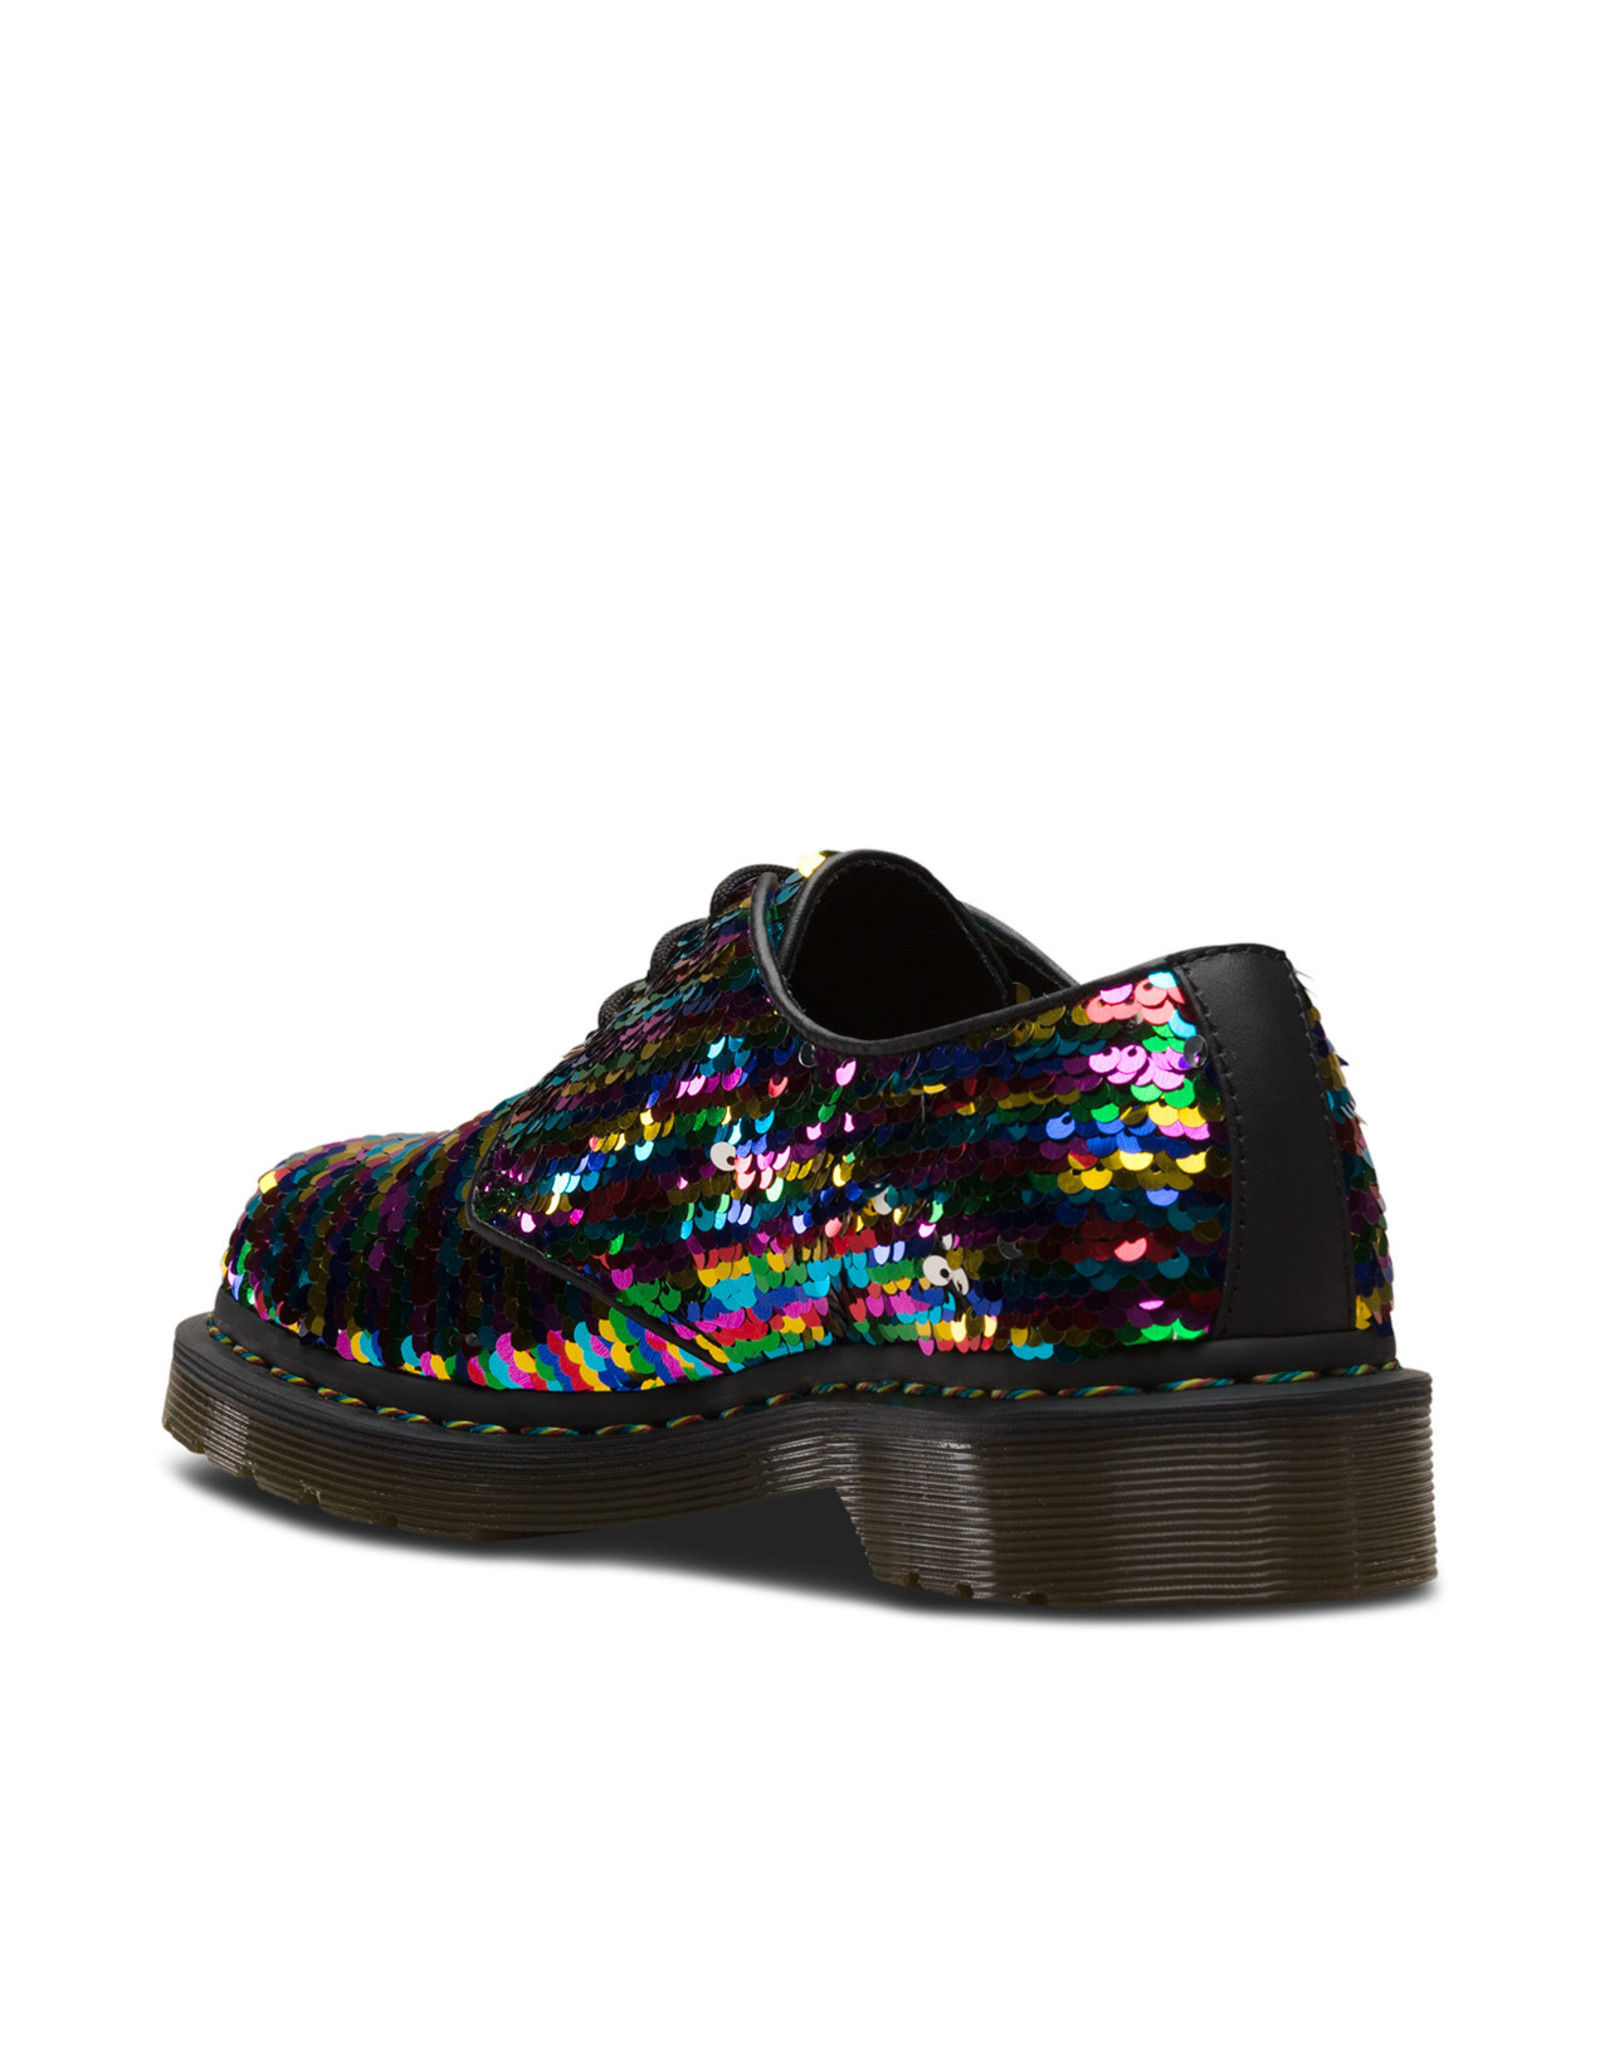 DR. MARTENS 1461 SEQUIN RAINBOW MULTI/SILVER 301SQR-R24597980